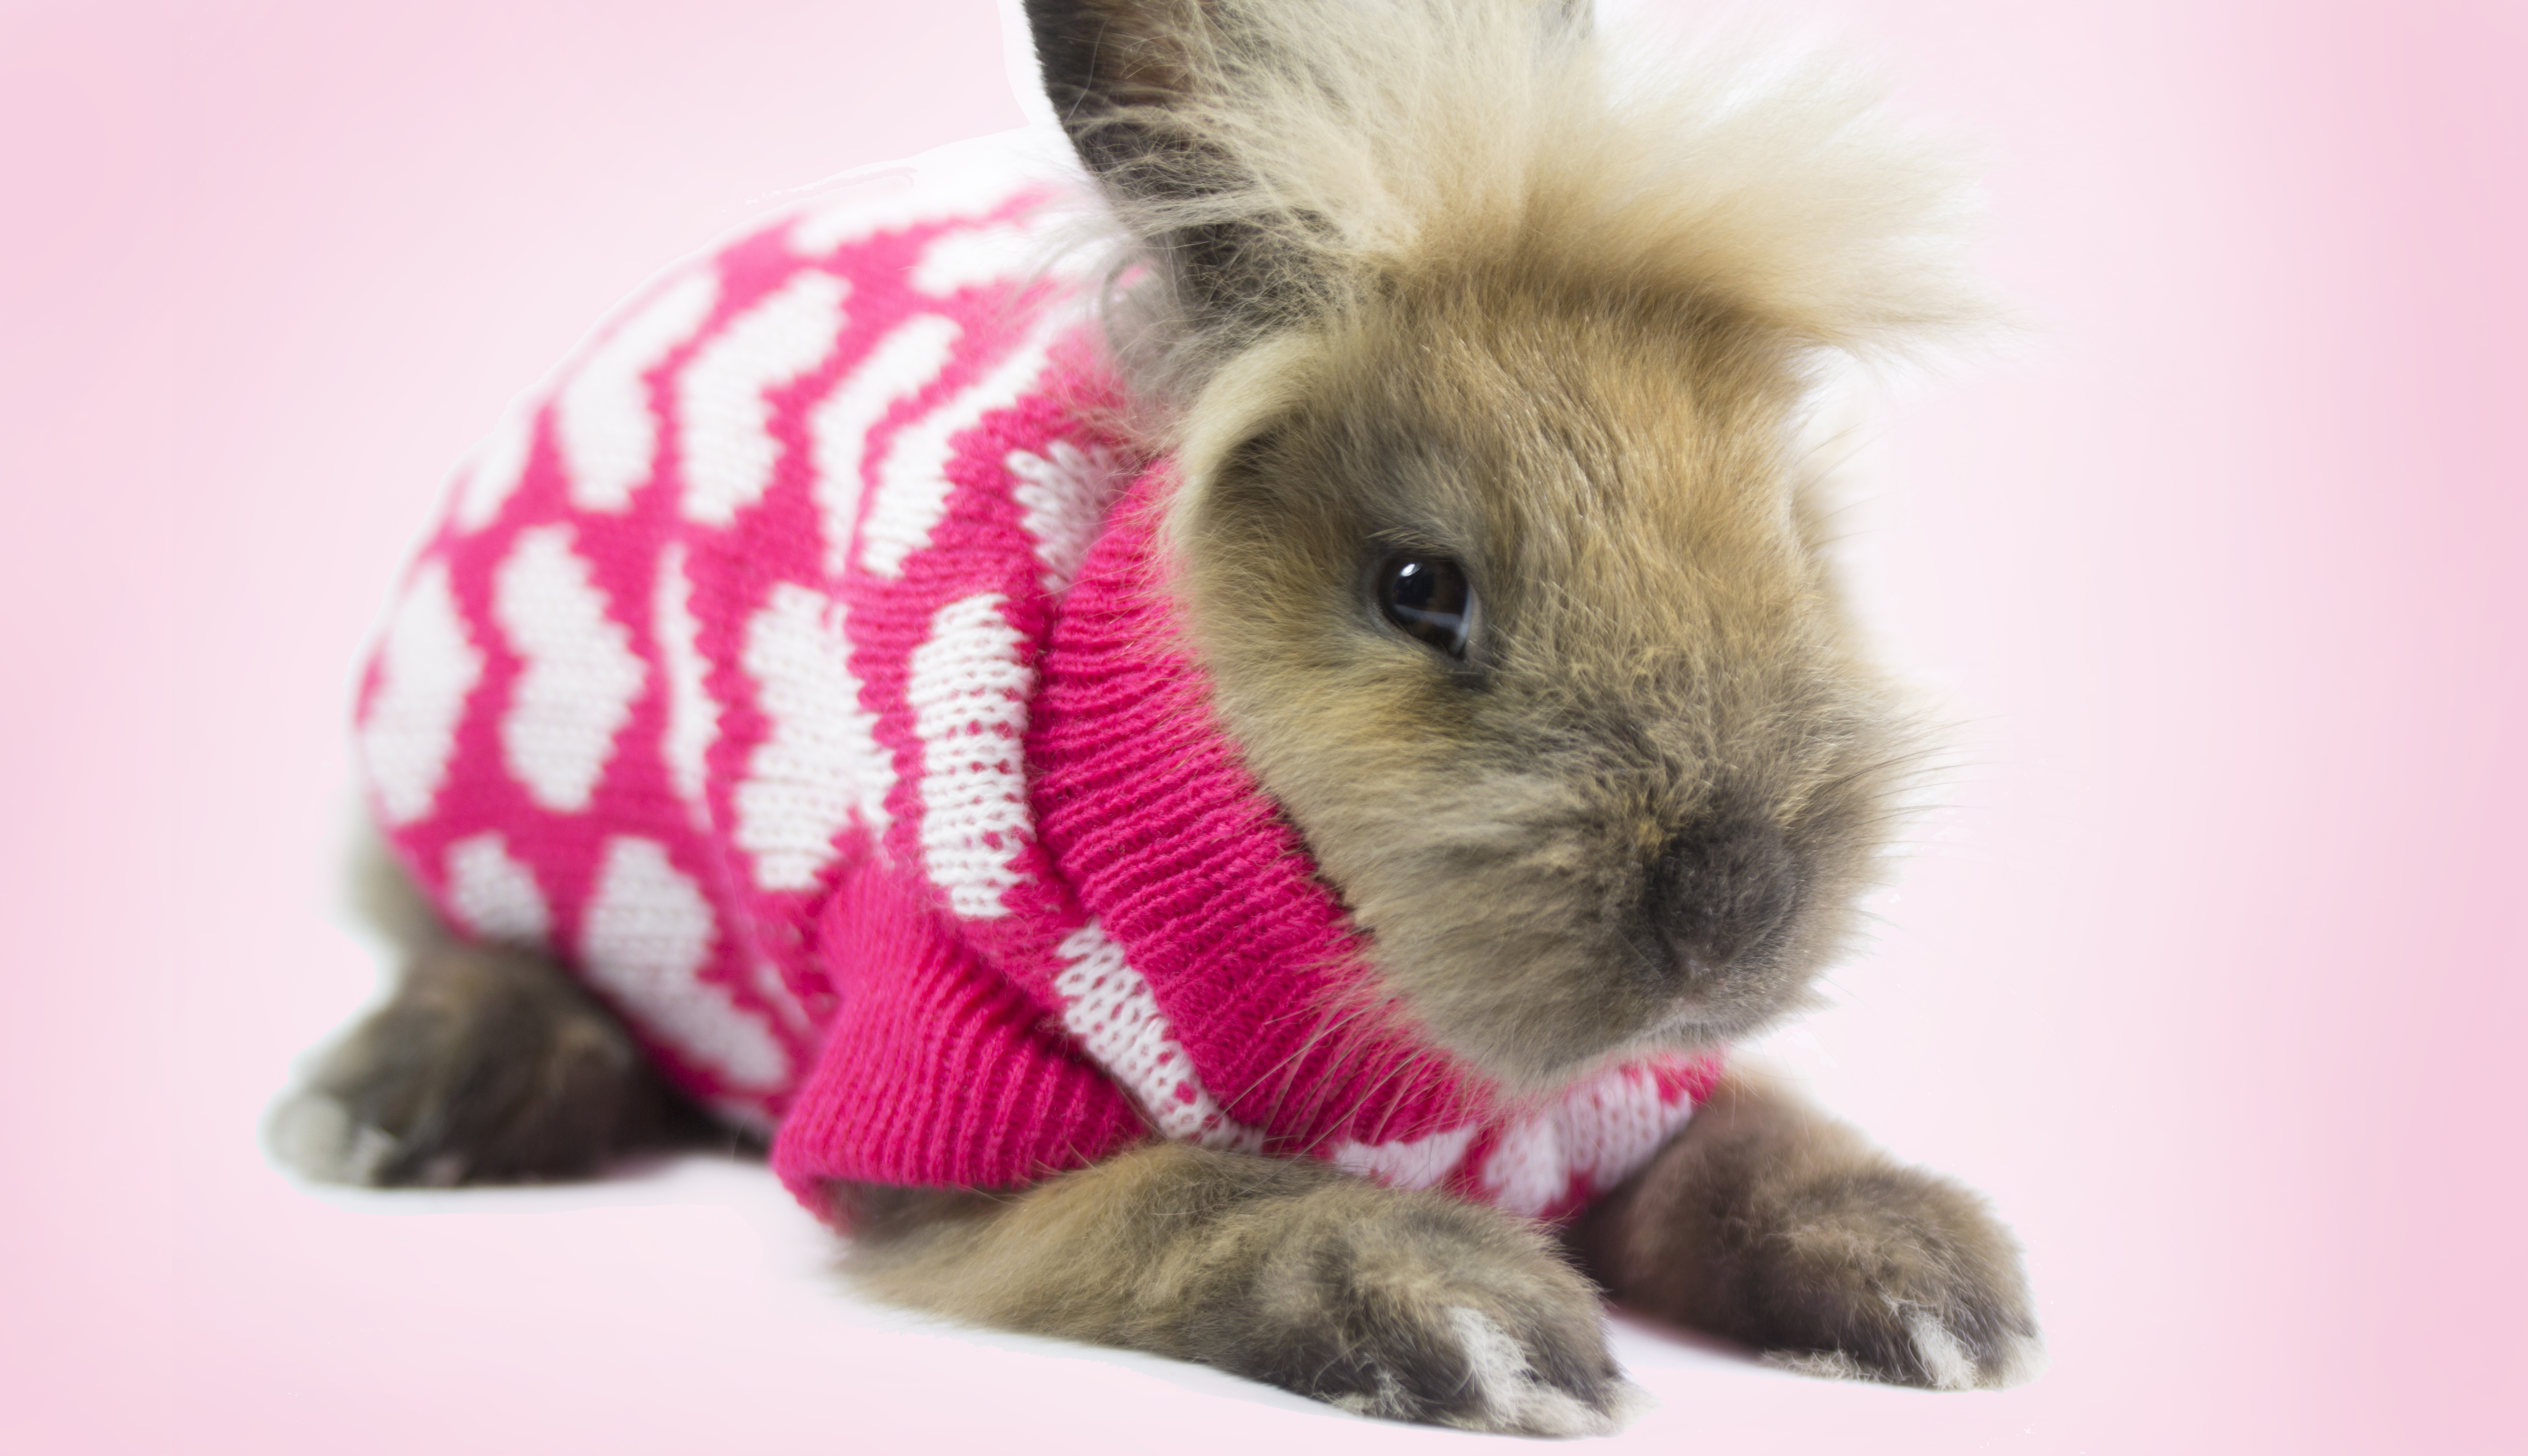 a pet rabbit wearing a sweater with hearts on it